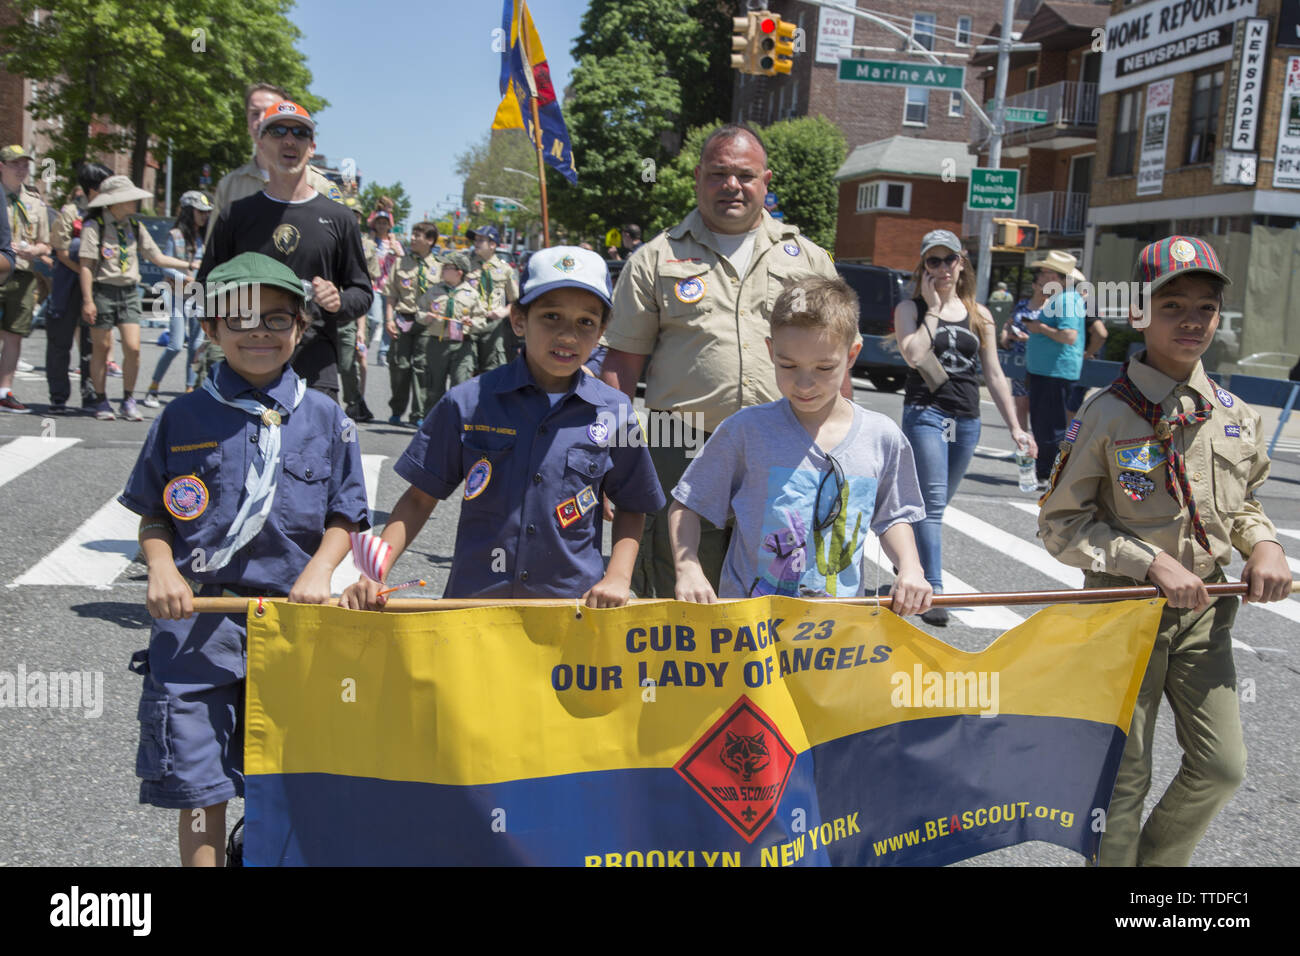 Cub Scouts Parade Stock Photos & Cub Scouts Parade Stock